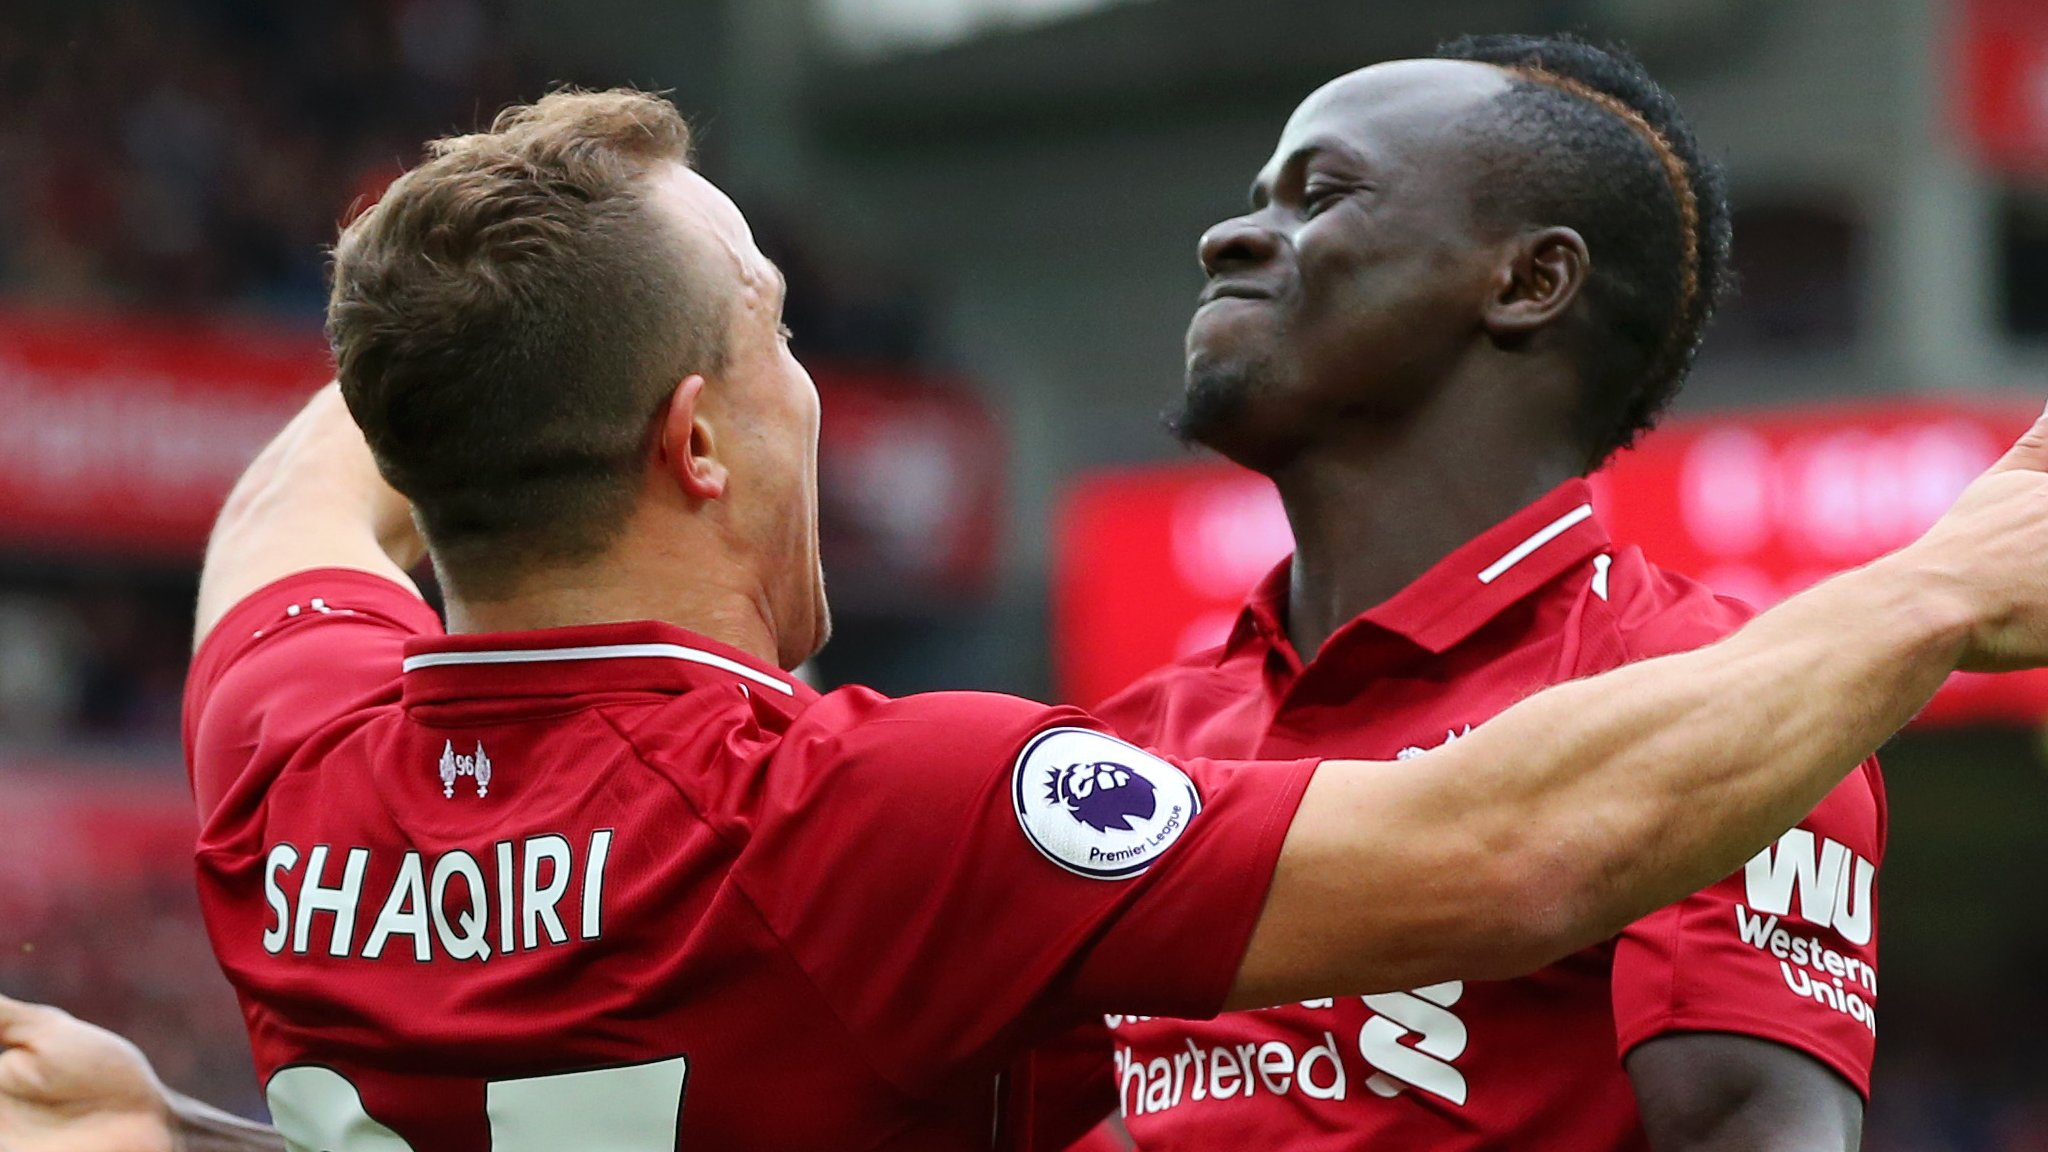 Premier League: Liverpool and Man City cruise to wins, Man Utd draw